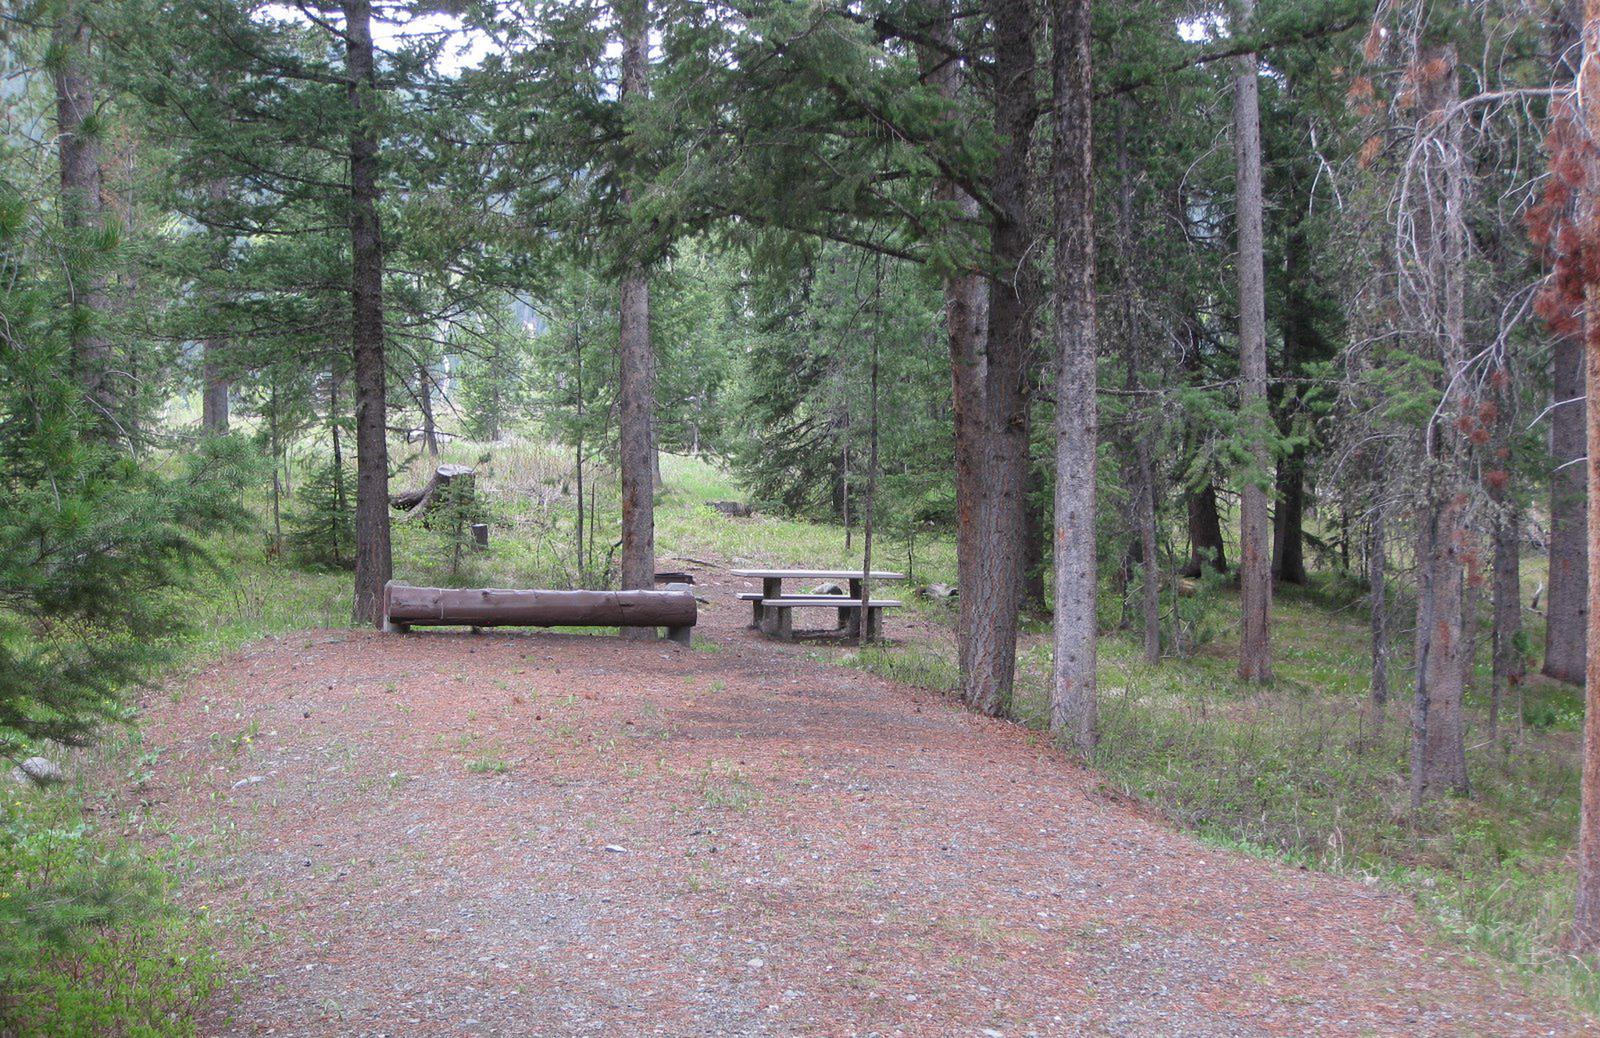 Site C4, campsite surrounded by pine trees, picnic table & fire ringSite C4